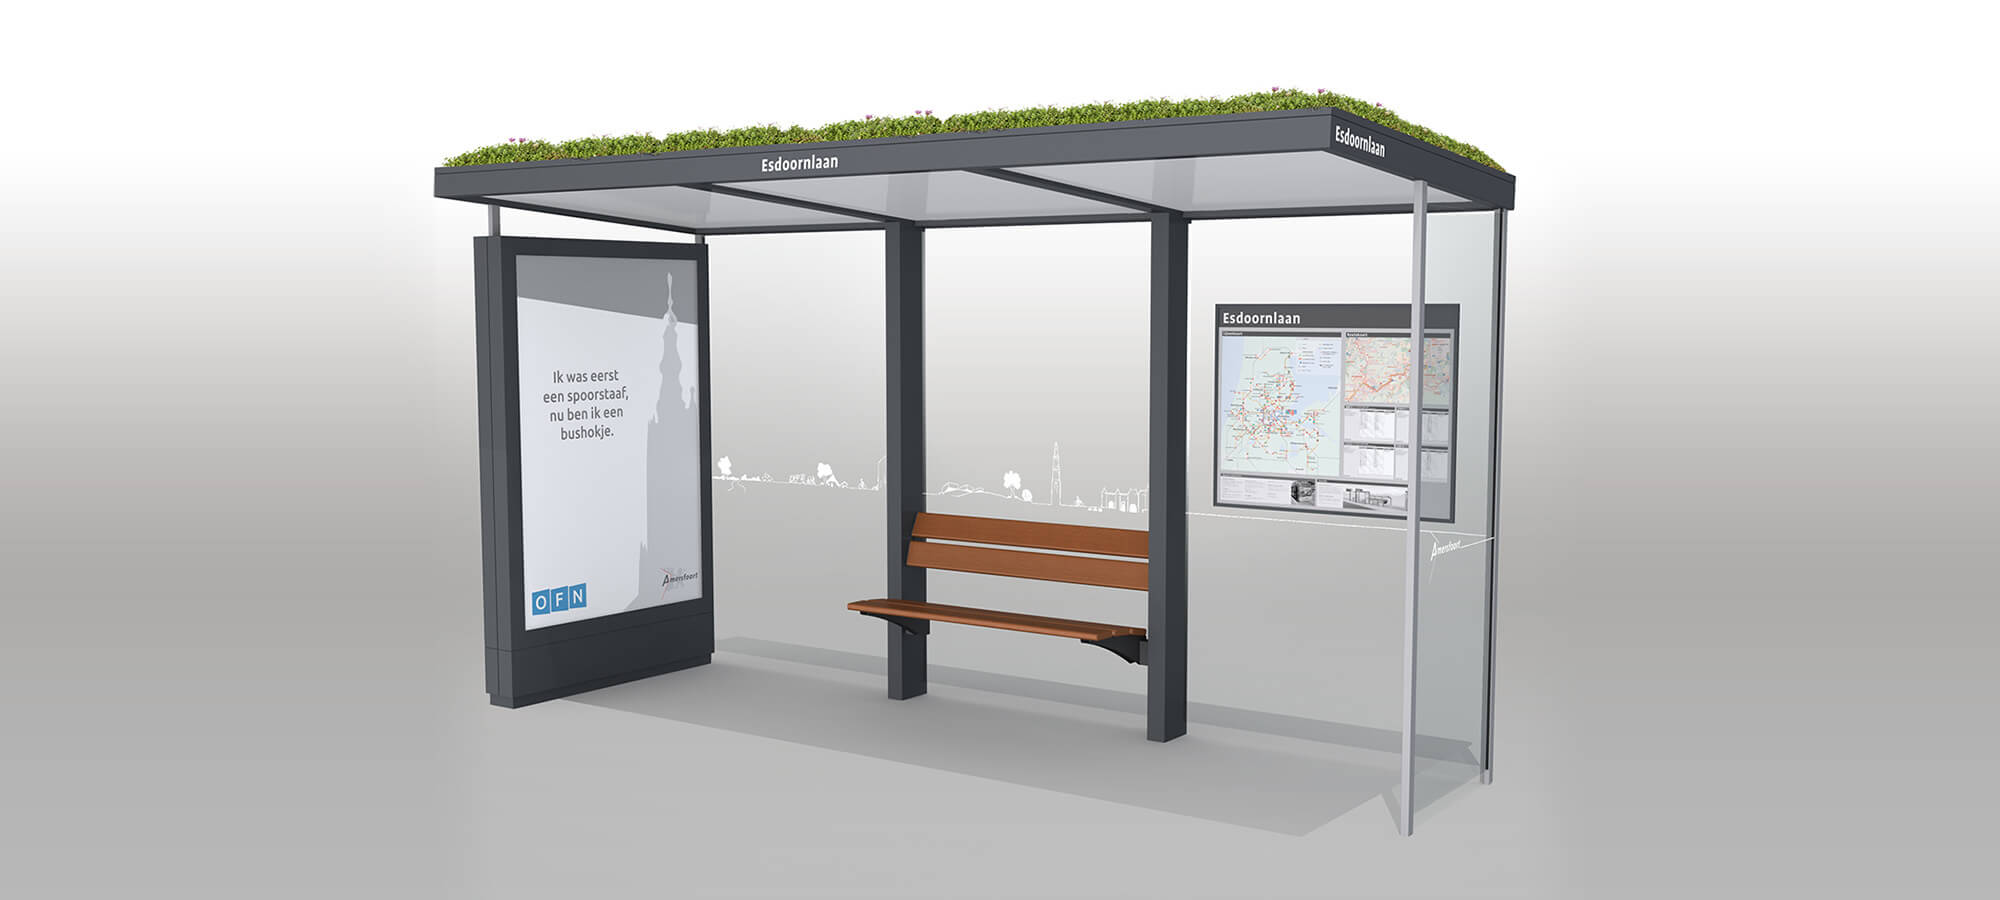 Sustainable bus shelter Amersfoort